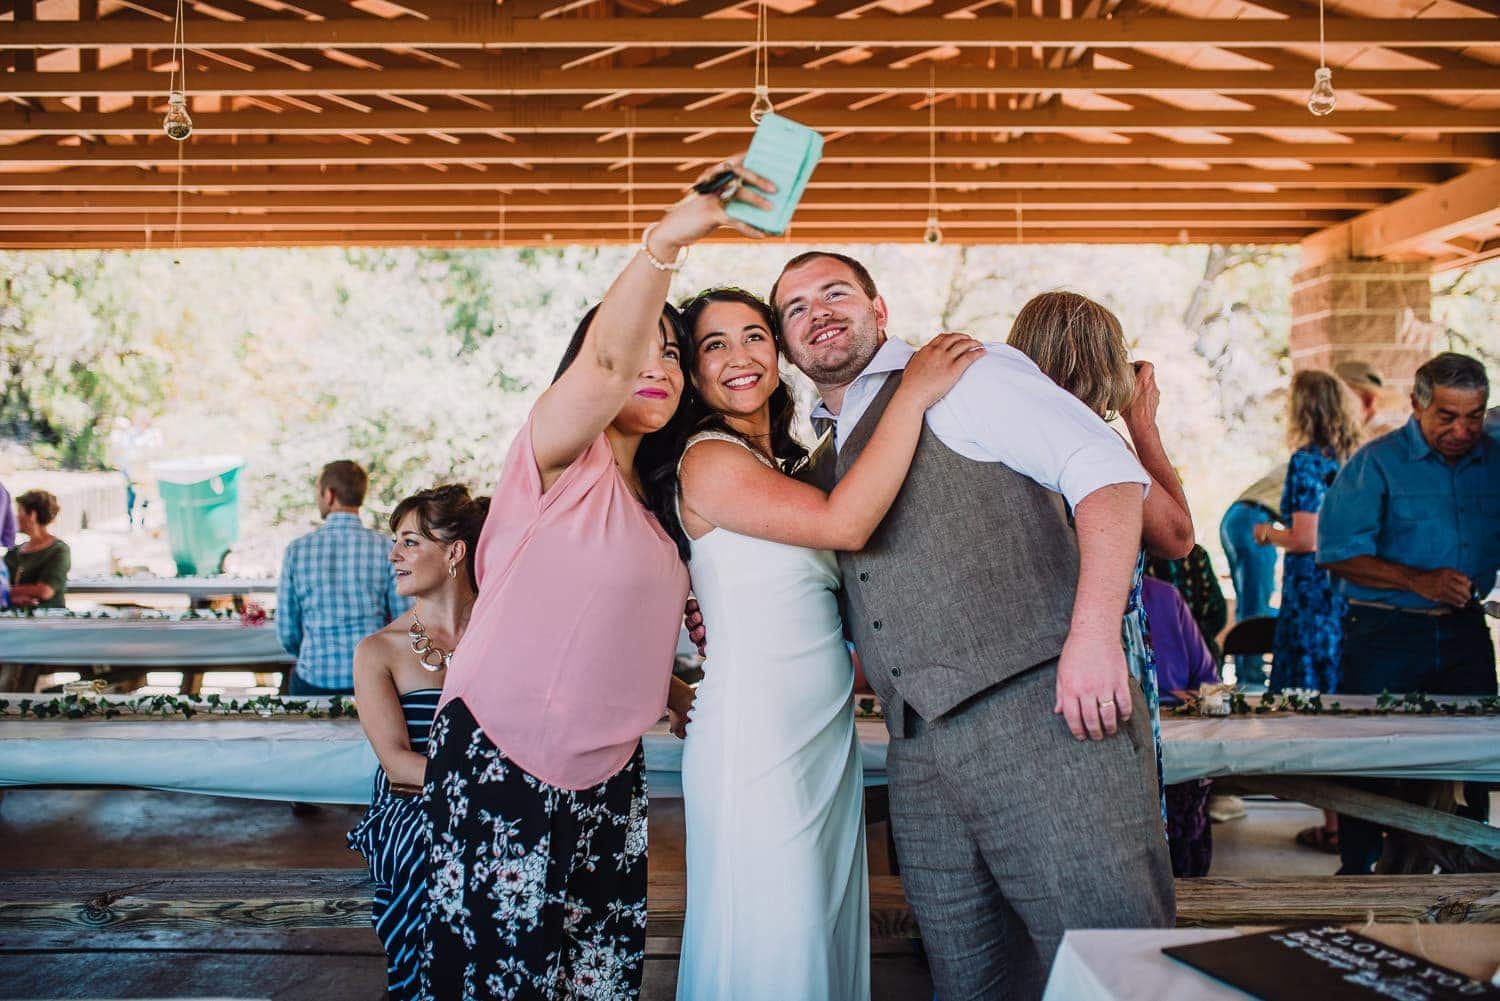 The bride and groom are smiling for a selfie with a friend.